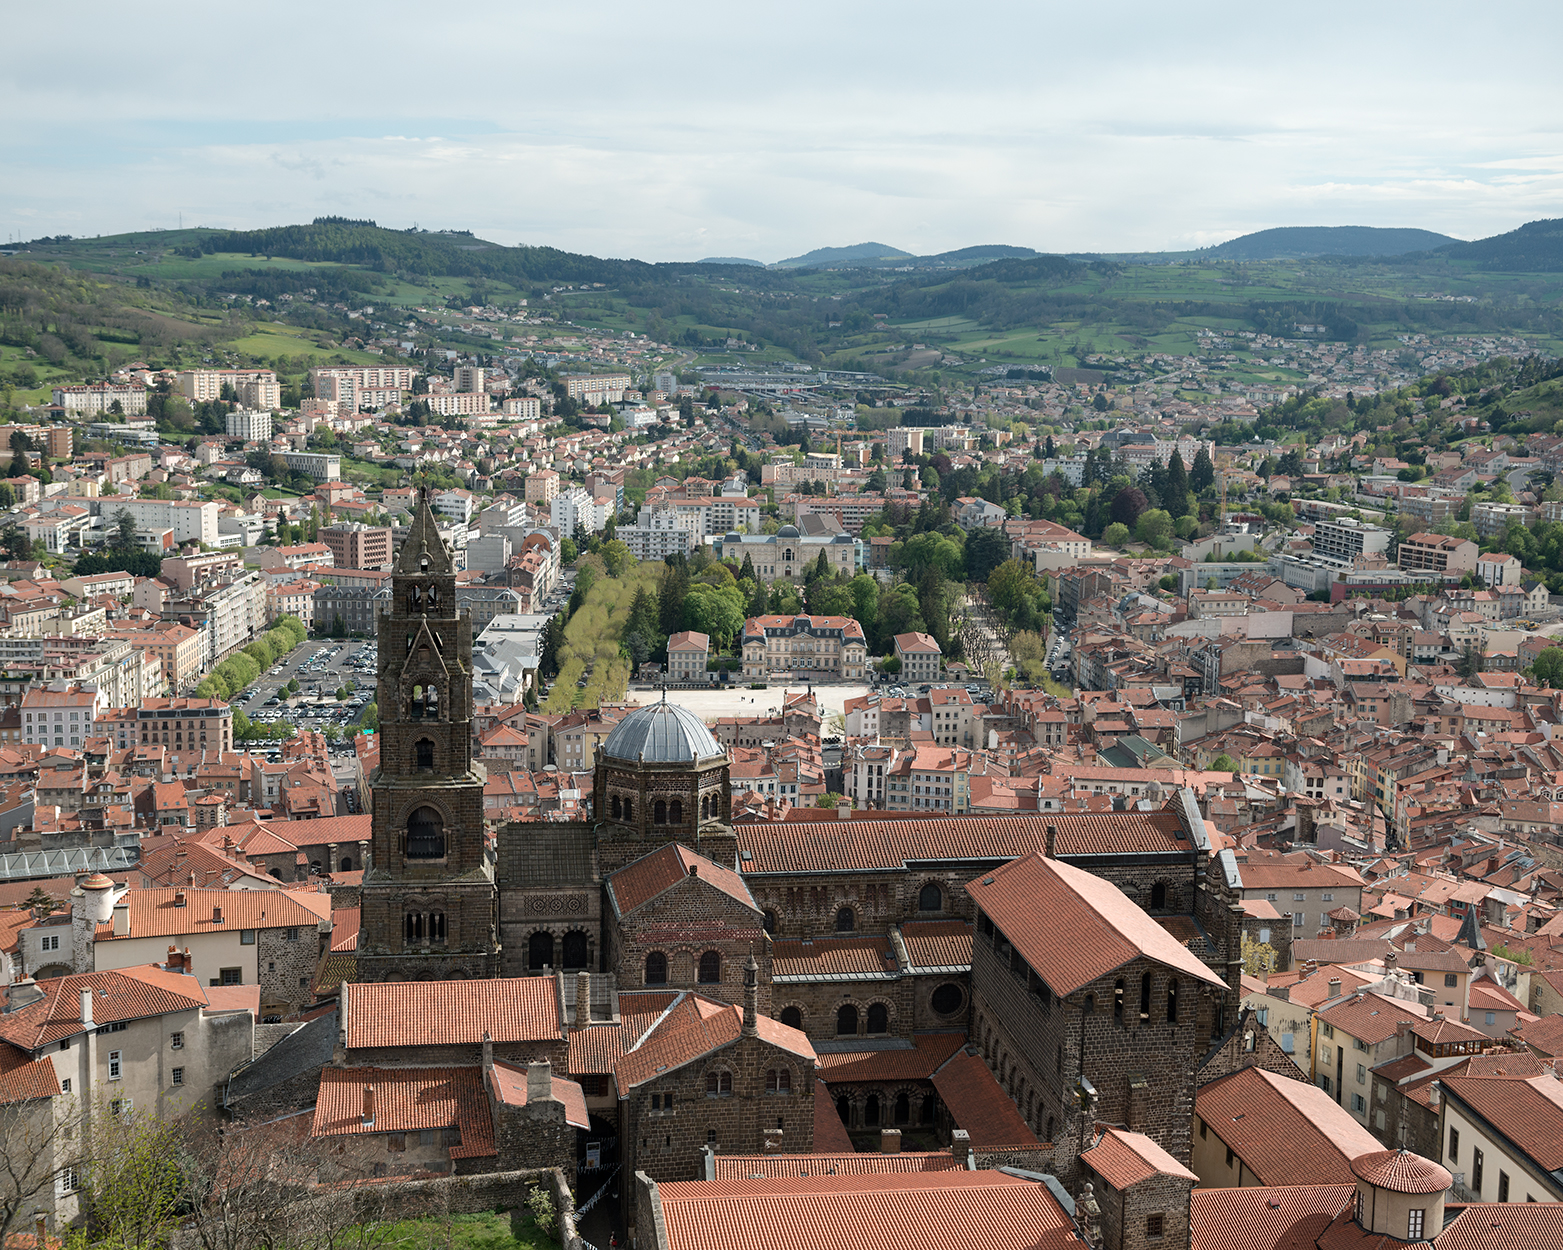 The Cathedral at Le Puy